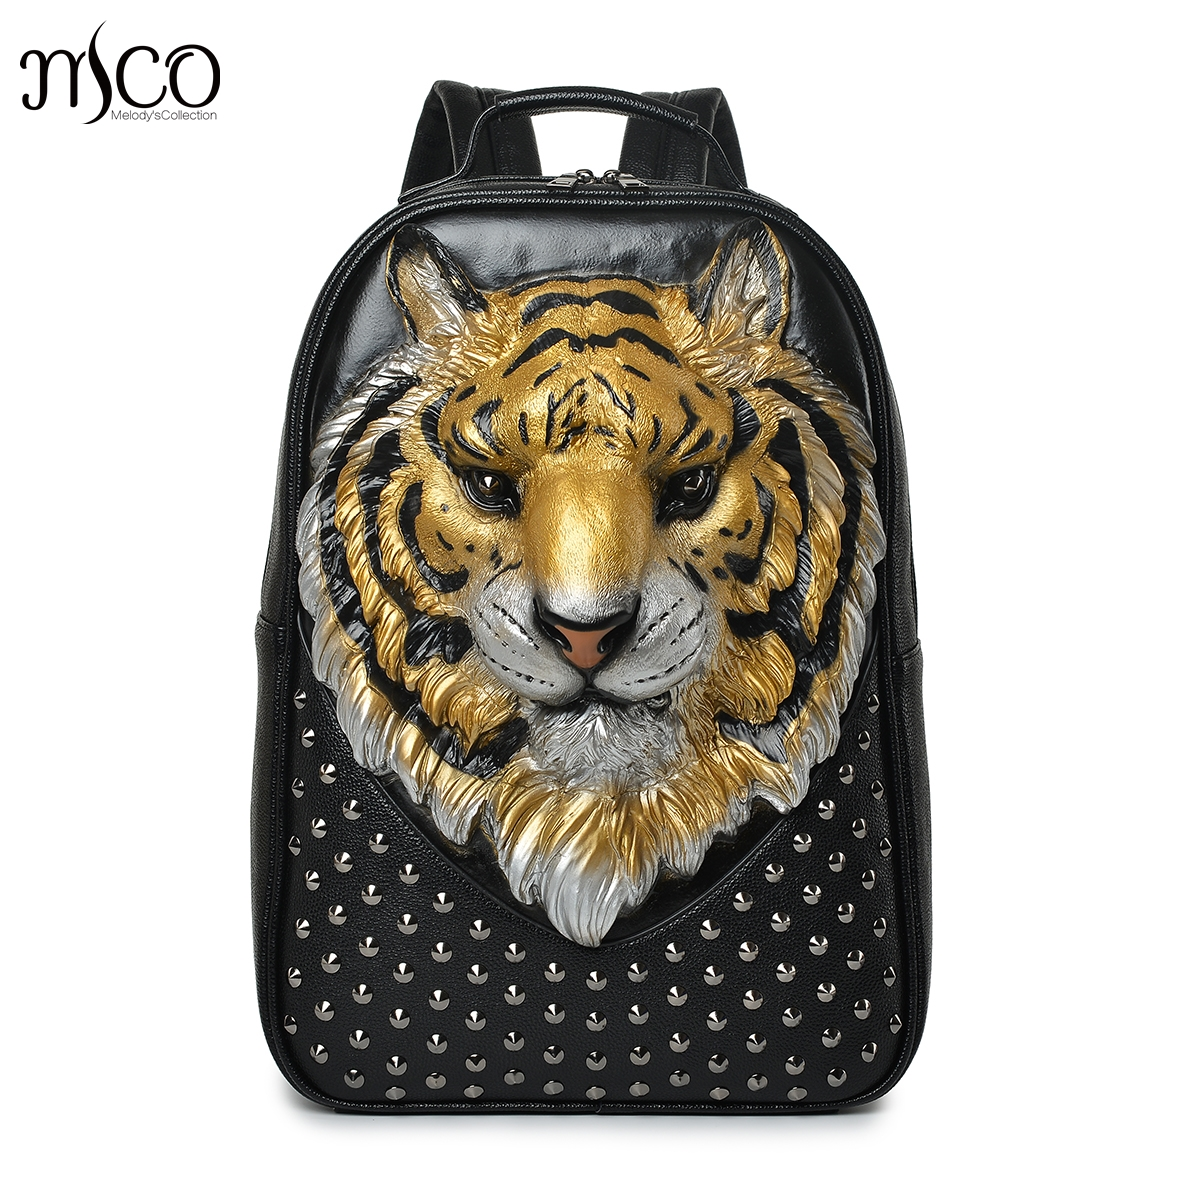 3d Emboss Tiger Head Studded Rivet Gother Men Backpack Leather Soft Travel Punk Rock Women Backpack Laptop School Halloween Bag